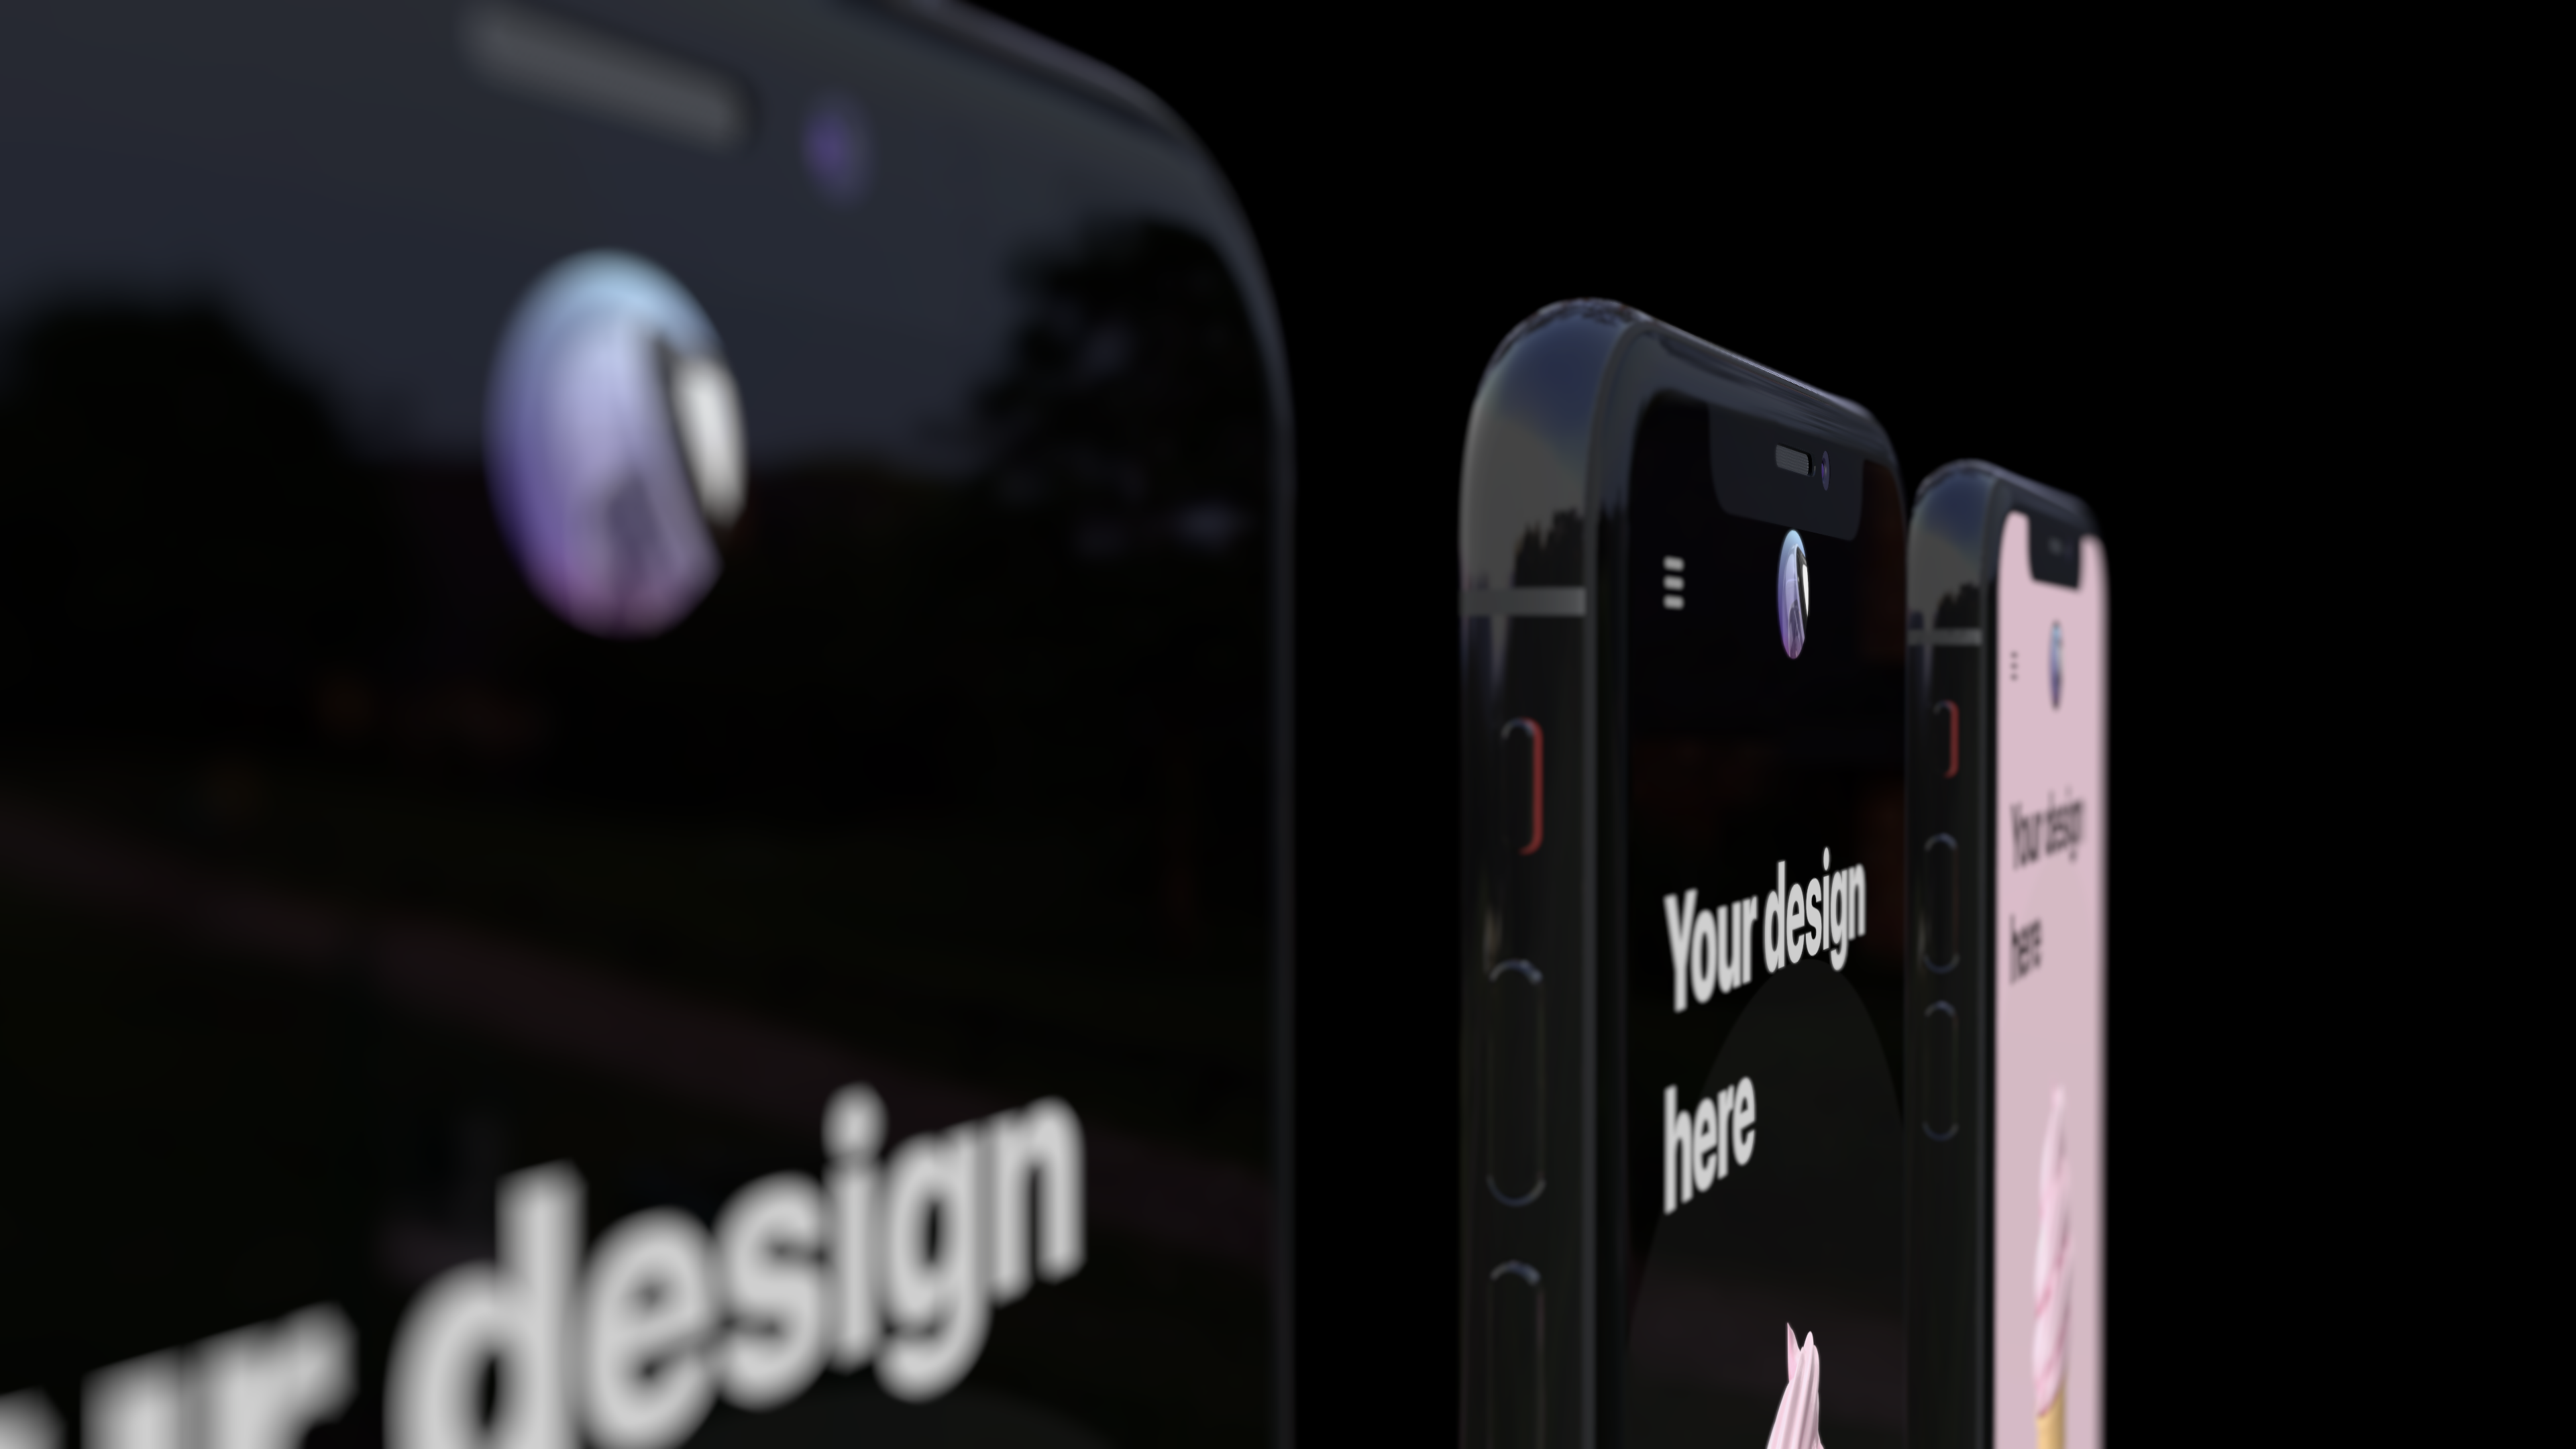 Three iPhone mockups from an angle with lens blur